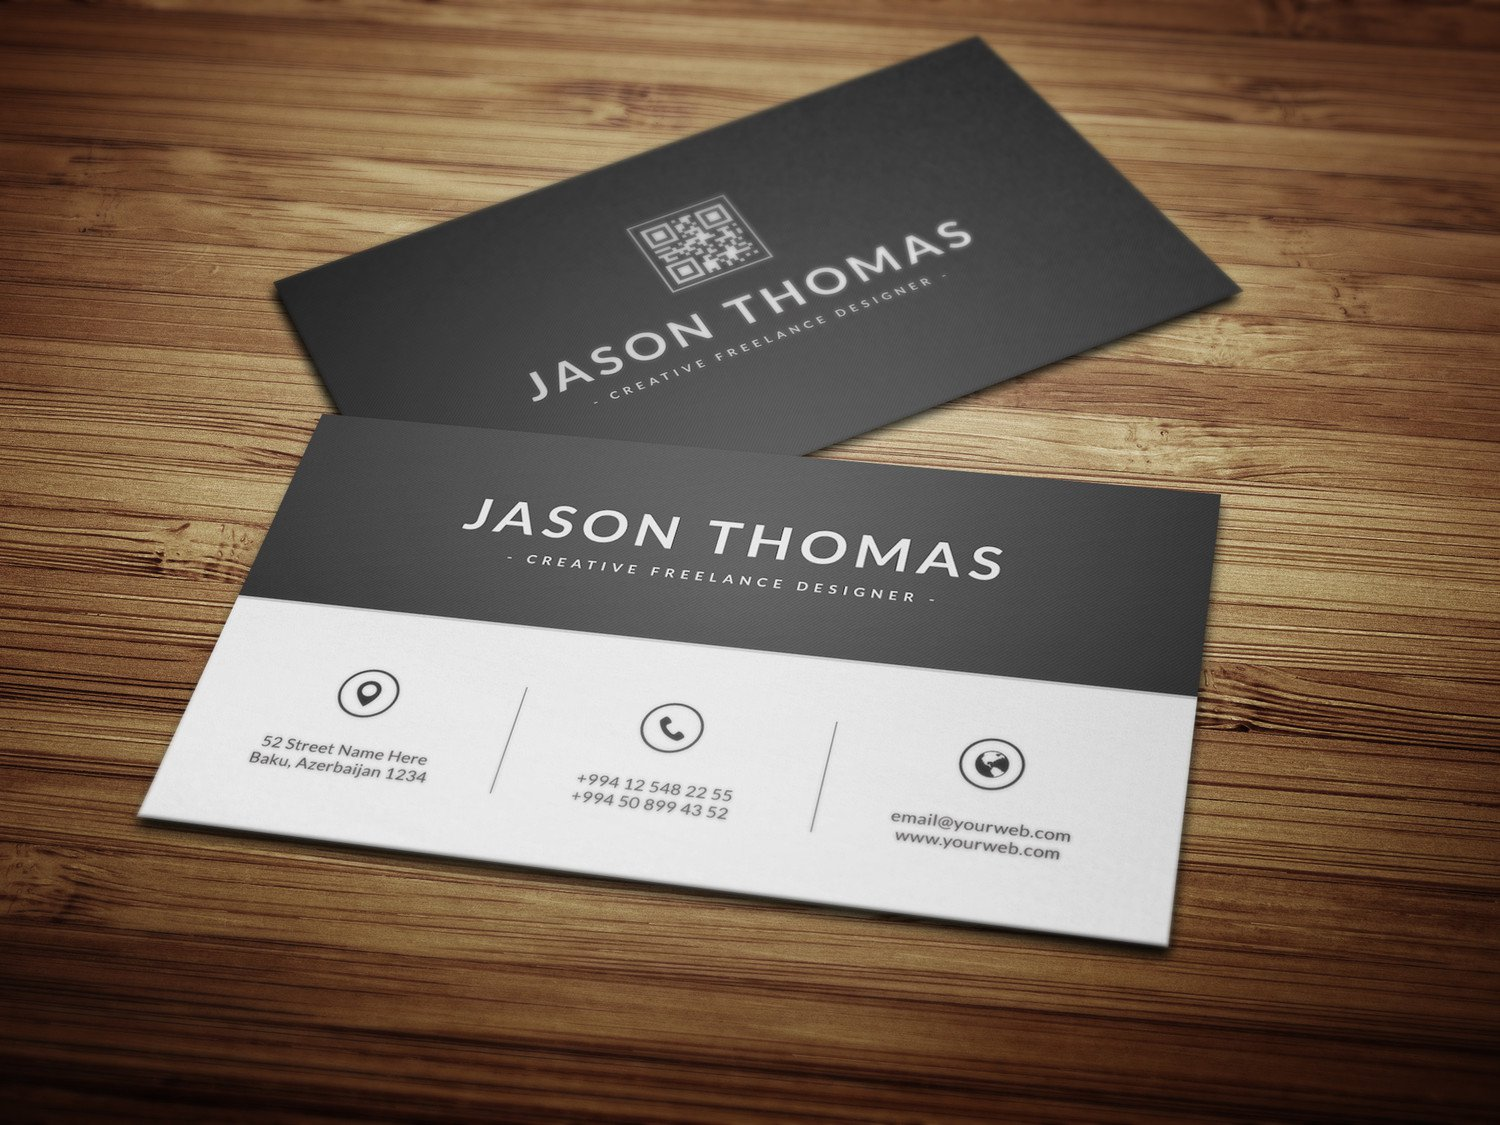 Free business card design business card tips free business card design wajeb Gallery